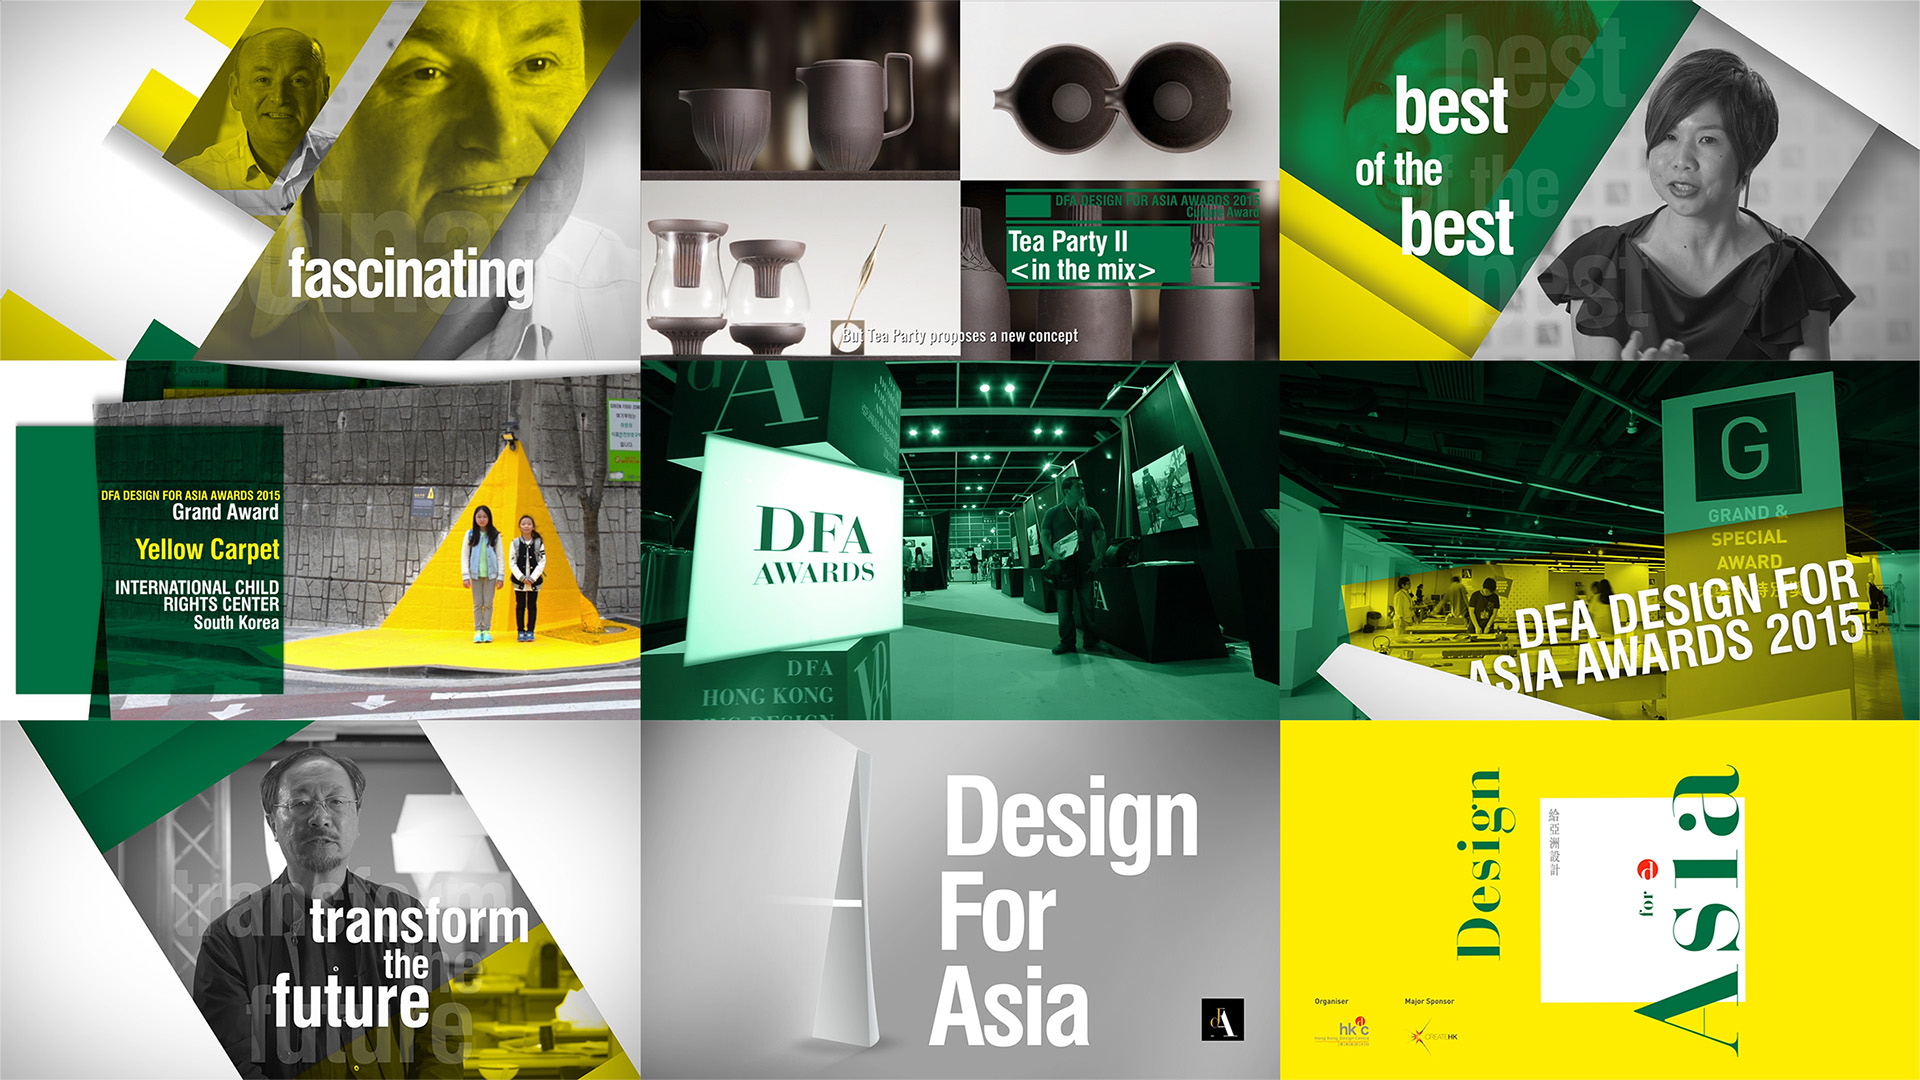 DESIGN FOR ASIA AWARDS (DFAA) 2015